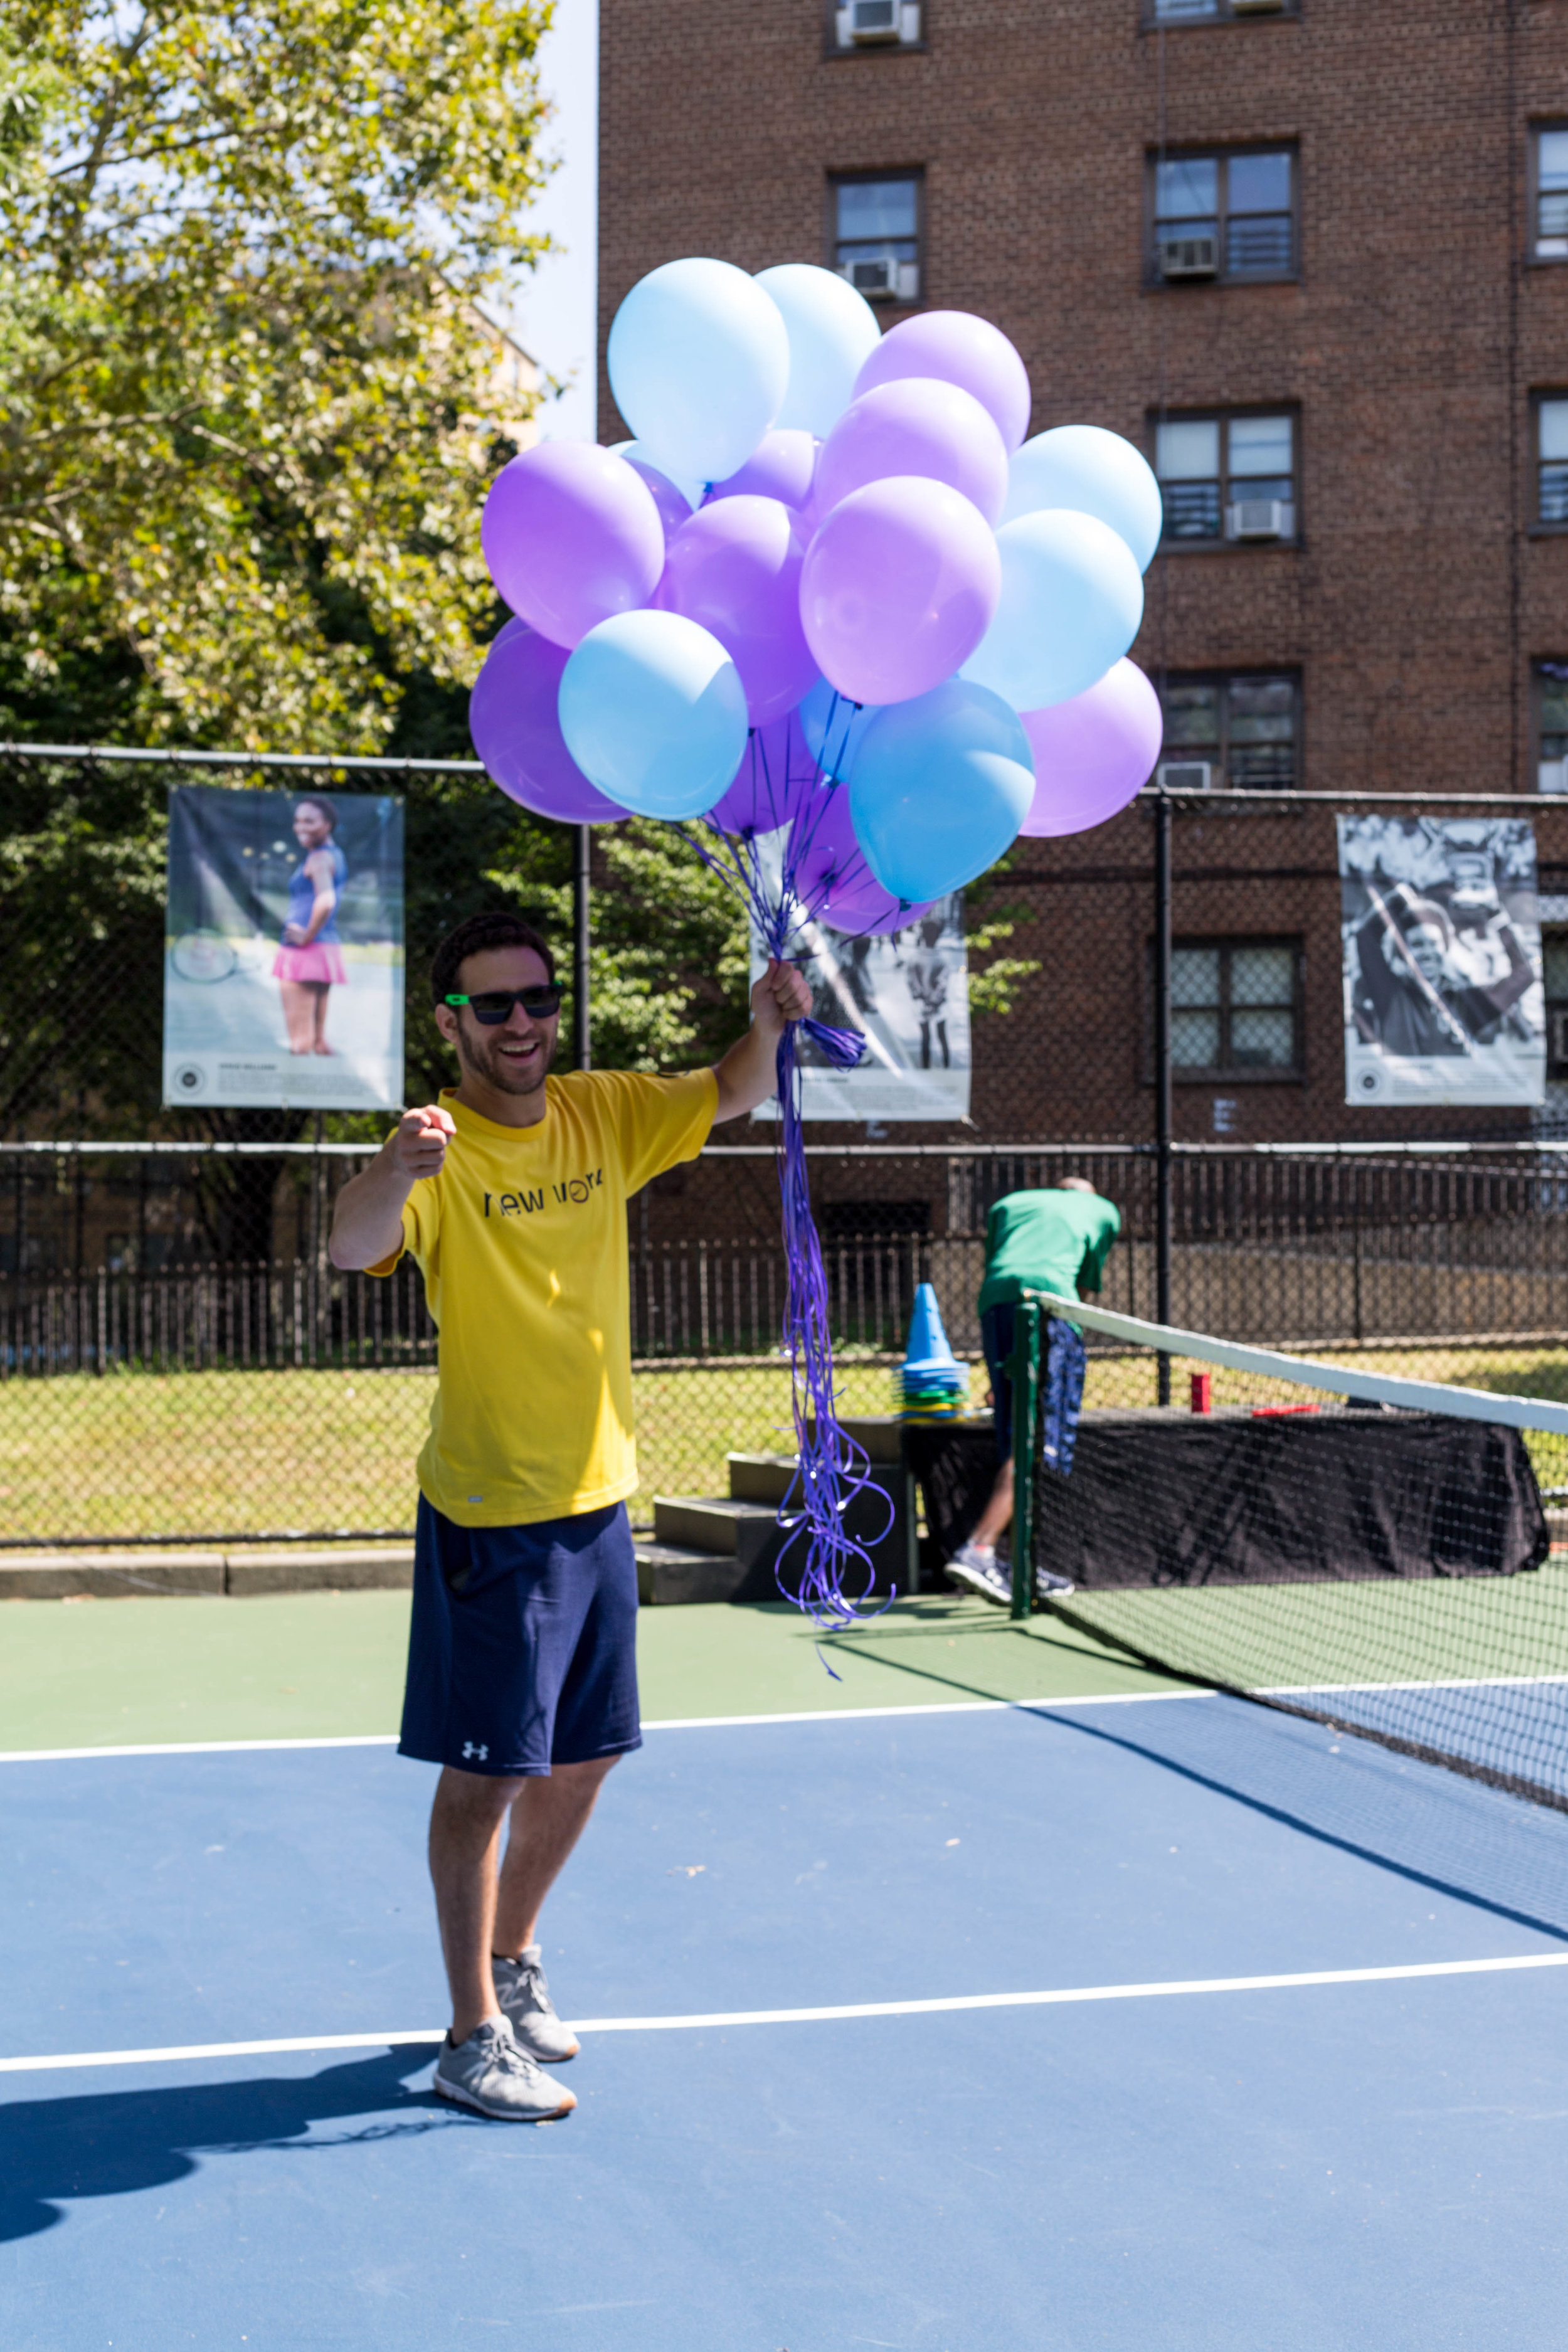 Volunteer Chase Atneu sets up for the community ribbon cutting at the Sumner Housing Project Tennis Court.